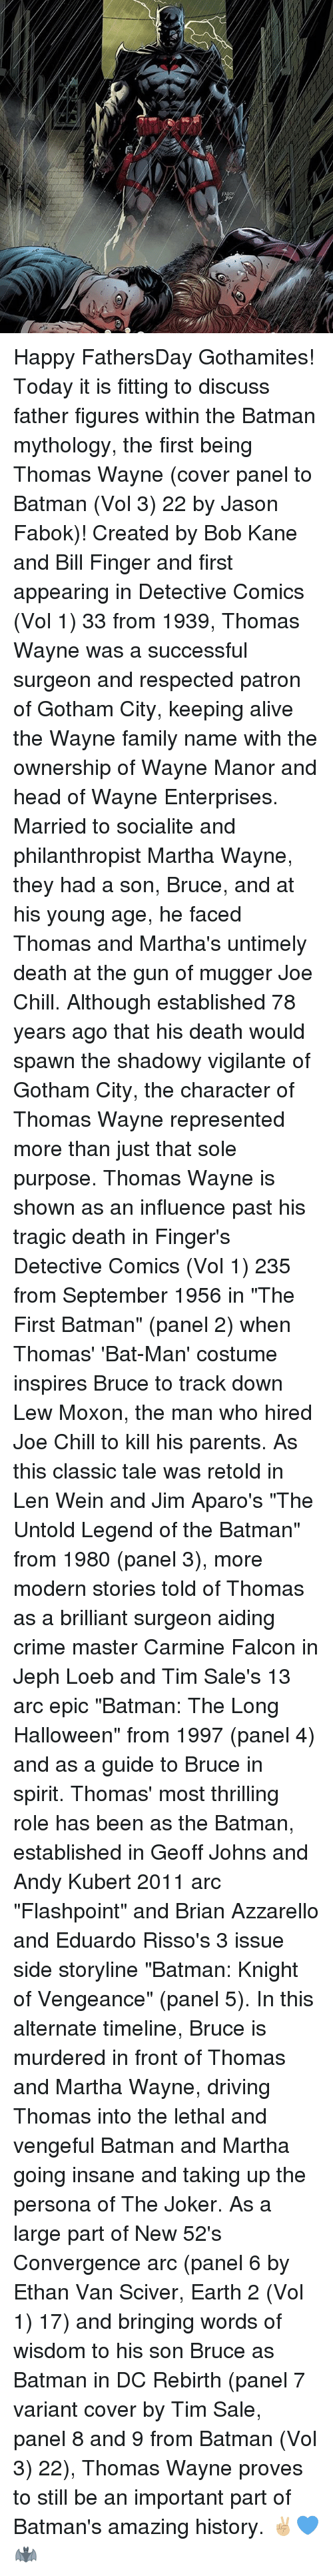 """thomas wayne: w,p Happy FathersDay Gothamites! Today it is fitting to discuss father figures within the Batman mythology, the first being Thomas Wayne (cover panel to Batman (Vol 3) 22 by Jason Fabok)! Created by Bob Kane and Bill Finger and first appearing in Detective Comics (Vol 1) 33 from 1939, Thomas Wayne was a successful surgeon and respected patron of Gotham City, keeping alive the Wayne family name with the ownership of Wayne Manor and head of Wayne Enterprises. Married to socialite and philanthropist Martha Wayne, they had a son, Bruce, and at his young age, he faced Thomas and Martha's untimely death at the gun of mugger Joe Chill. Although established 78 years ago that his death would spawn the shadowy vigilante of Gotham City, the character of Thomas Wayne represented more than just that sole purpose. Thomas Wayne is shown as an influence past his tragic death in Finger's Detective Comics (Vol 1) 235 from September 1956 in """"The First Batman"""" (panel 2) when Thomas' 'Bat-Man' costume inspires Bruce to track down Lew Moxon, the man who hired Joe Chill to kill his parents. As this classic tale was retold in Len Wein and Jim Aparo's """"The Untold Legend of the Batman"""" from 1980 (panel 3), more modern stories told of Thomas as a brilliant surgeon aiding crime master Carmine Falcon in Jeph Loeb and Tim Sale's 13 arc epic """"Batman: The Long Halloween"""" from 1997 (panel 4) and as a guide to Bruce in spirit. Thomas' most thrilling role has been as the Batman, established in Geoff Johns and Andy Kubert 2011 arc """"Flashpoint"""" and Brian Azzarello and Eduardo Risso's 3 issue side storyline """"Batman: Knight of Vengeance"""" (panel 5). In this alternate timeline, Bruce is murdered in front of Thomas and Martha Wayne, driving Thomas into the lethal and vengeful Batman and Martha going insane and taking up the persona of The Joker. As a large part of New 52's Convergence arc (panel 6 by Ethan Van Sciver, Earth 2 (Vol 1) 17) and bringing words of wisdom to his son Bruce as Batman """